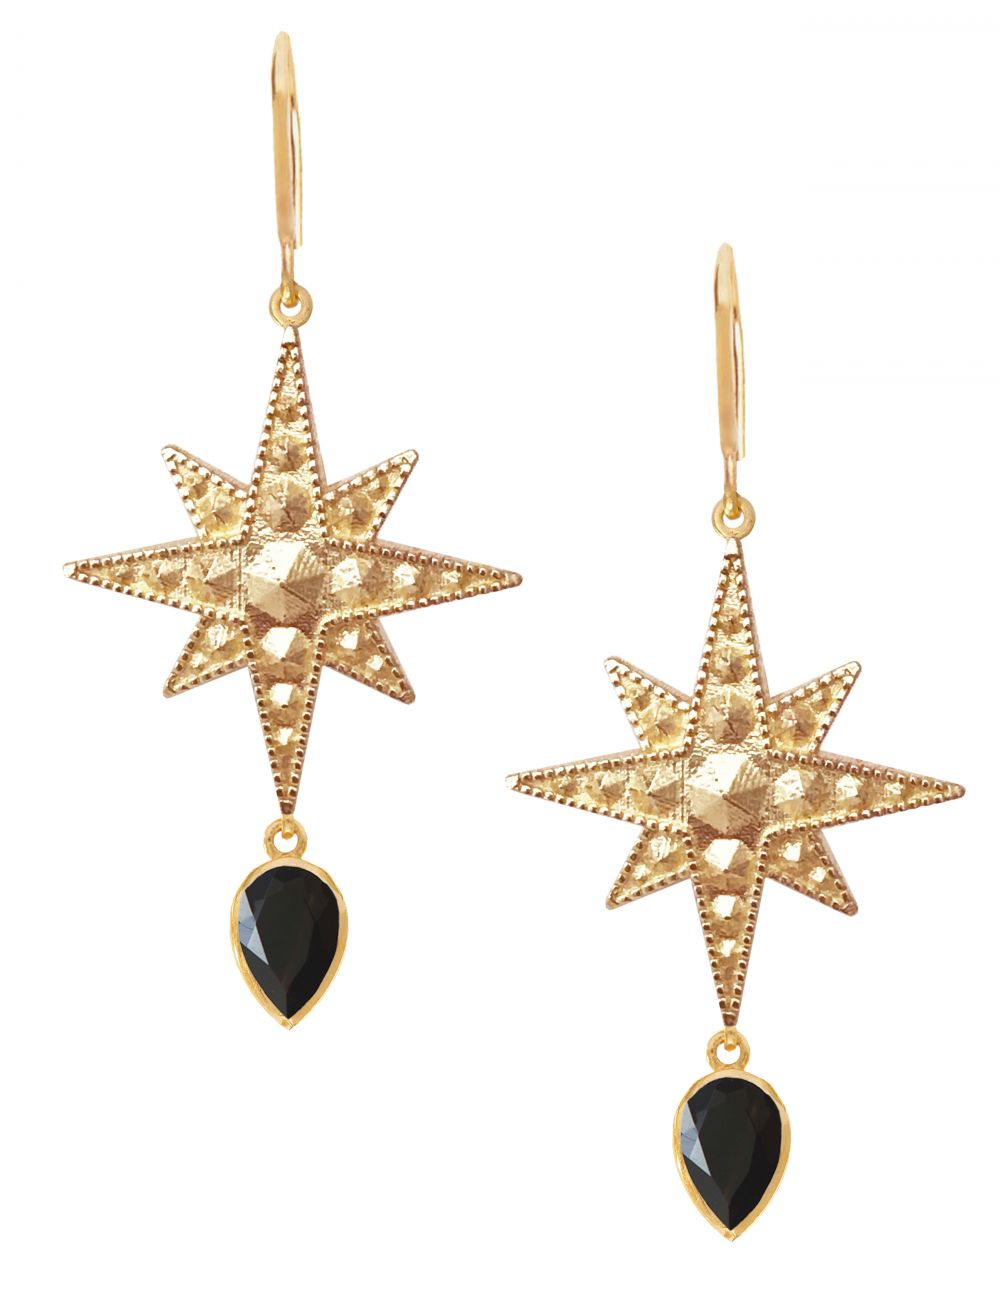 Sirius Earrings<br /><i><small>18K Gold Plated with Black Onyx</small></i><br /> - Eddera